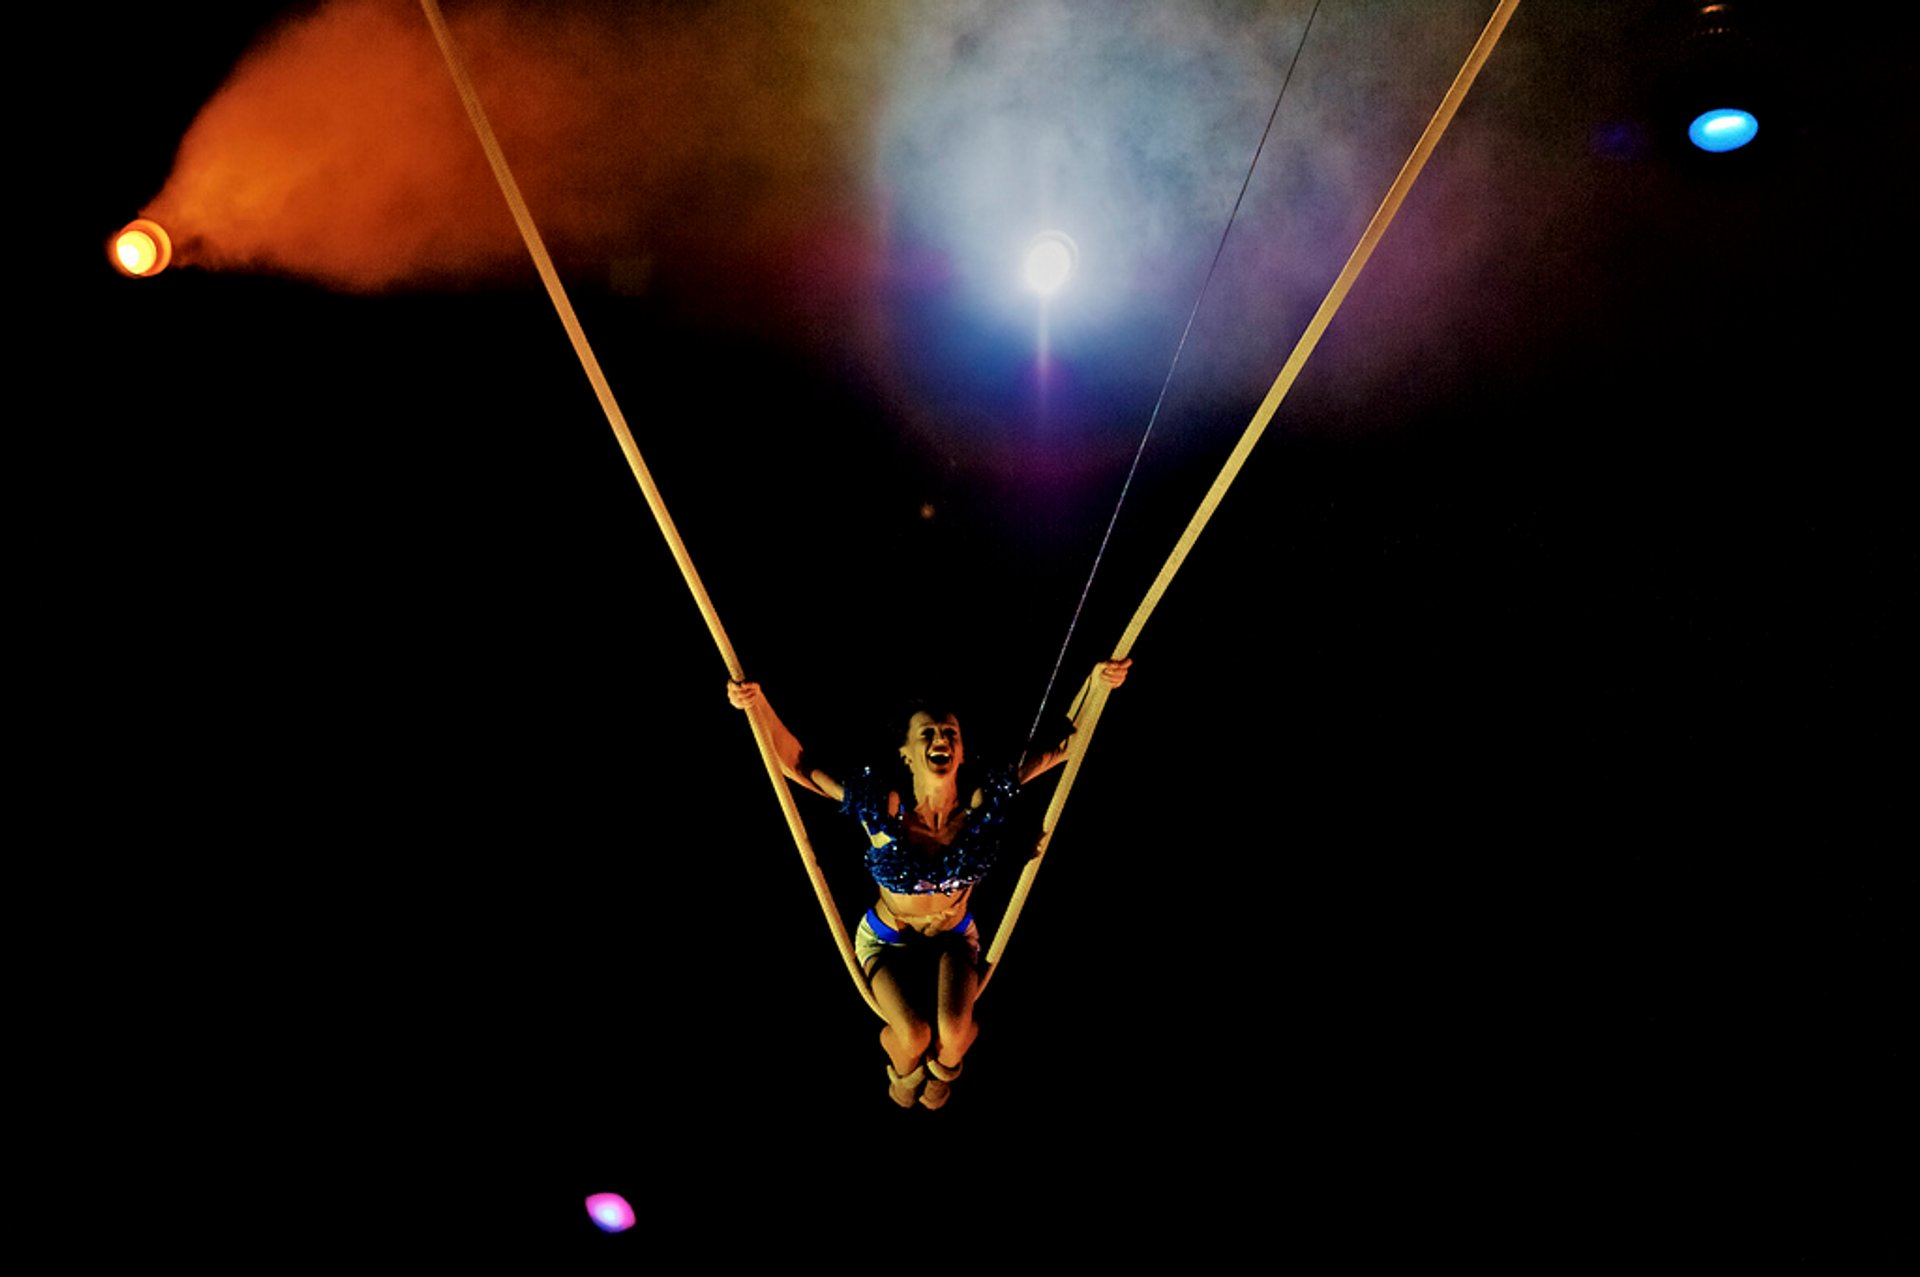 Big Apple Circus in New York 2020 - Best Time